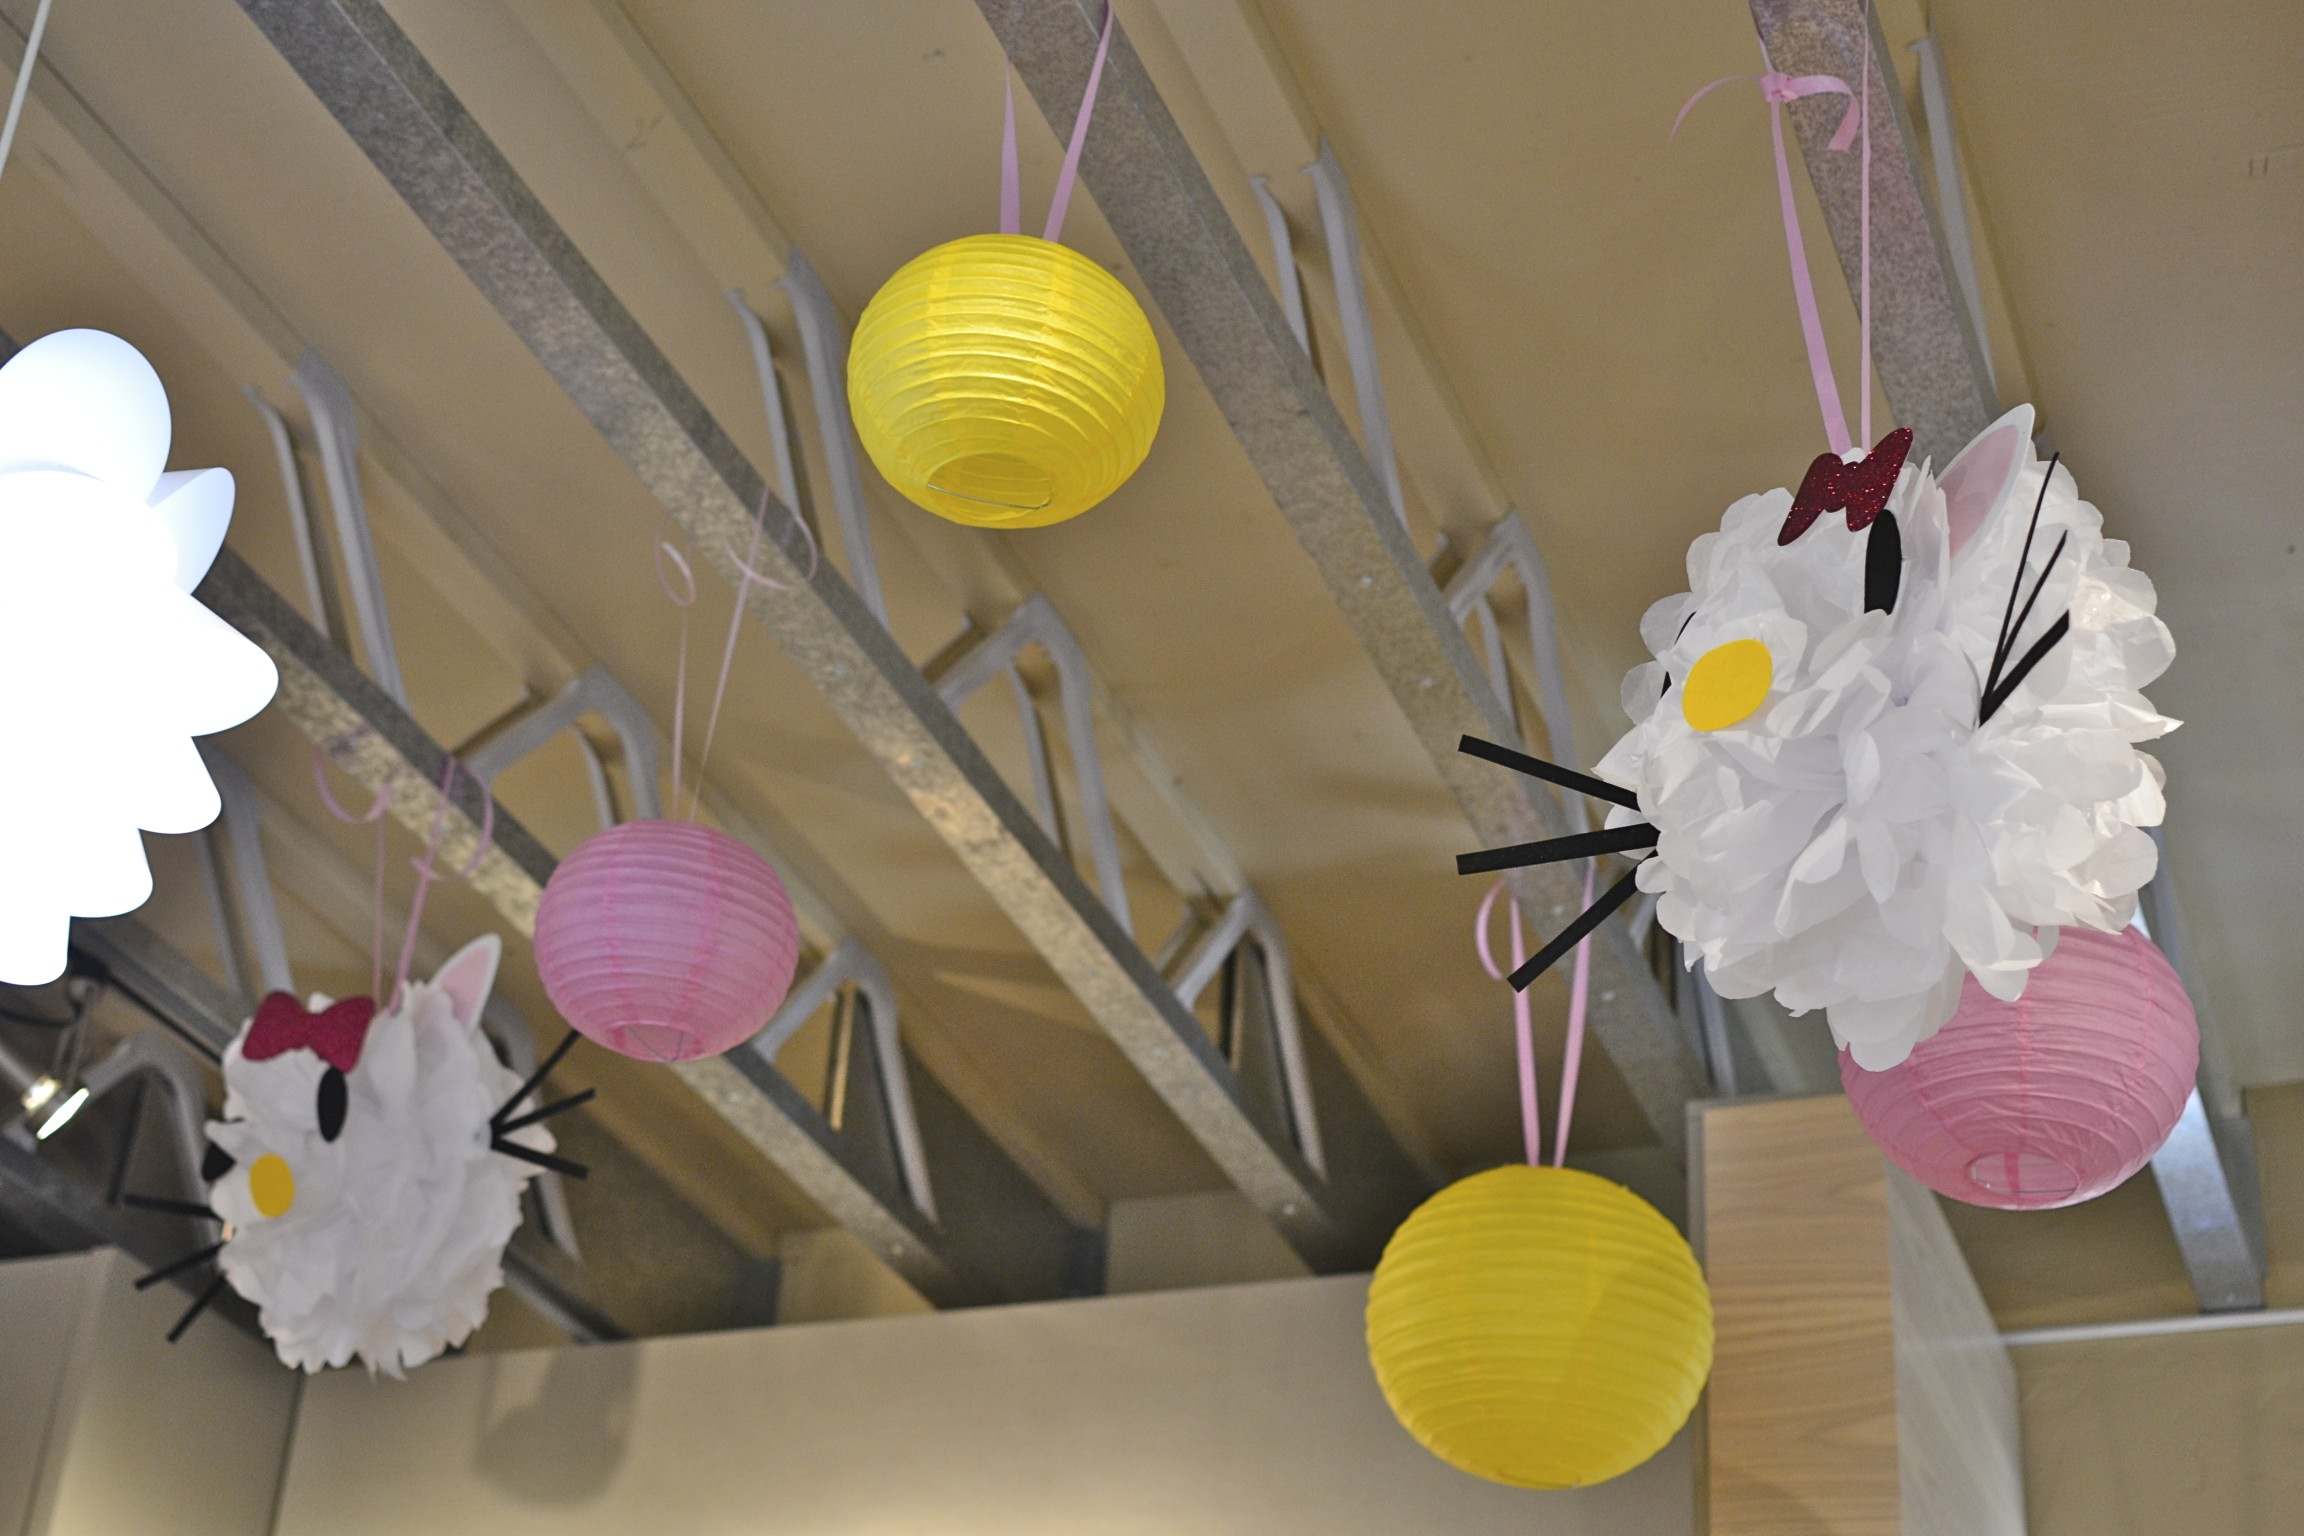 our exposed ceiling trusses are perfect for decorating for parties!